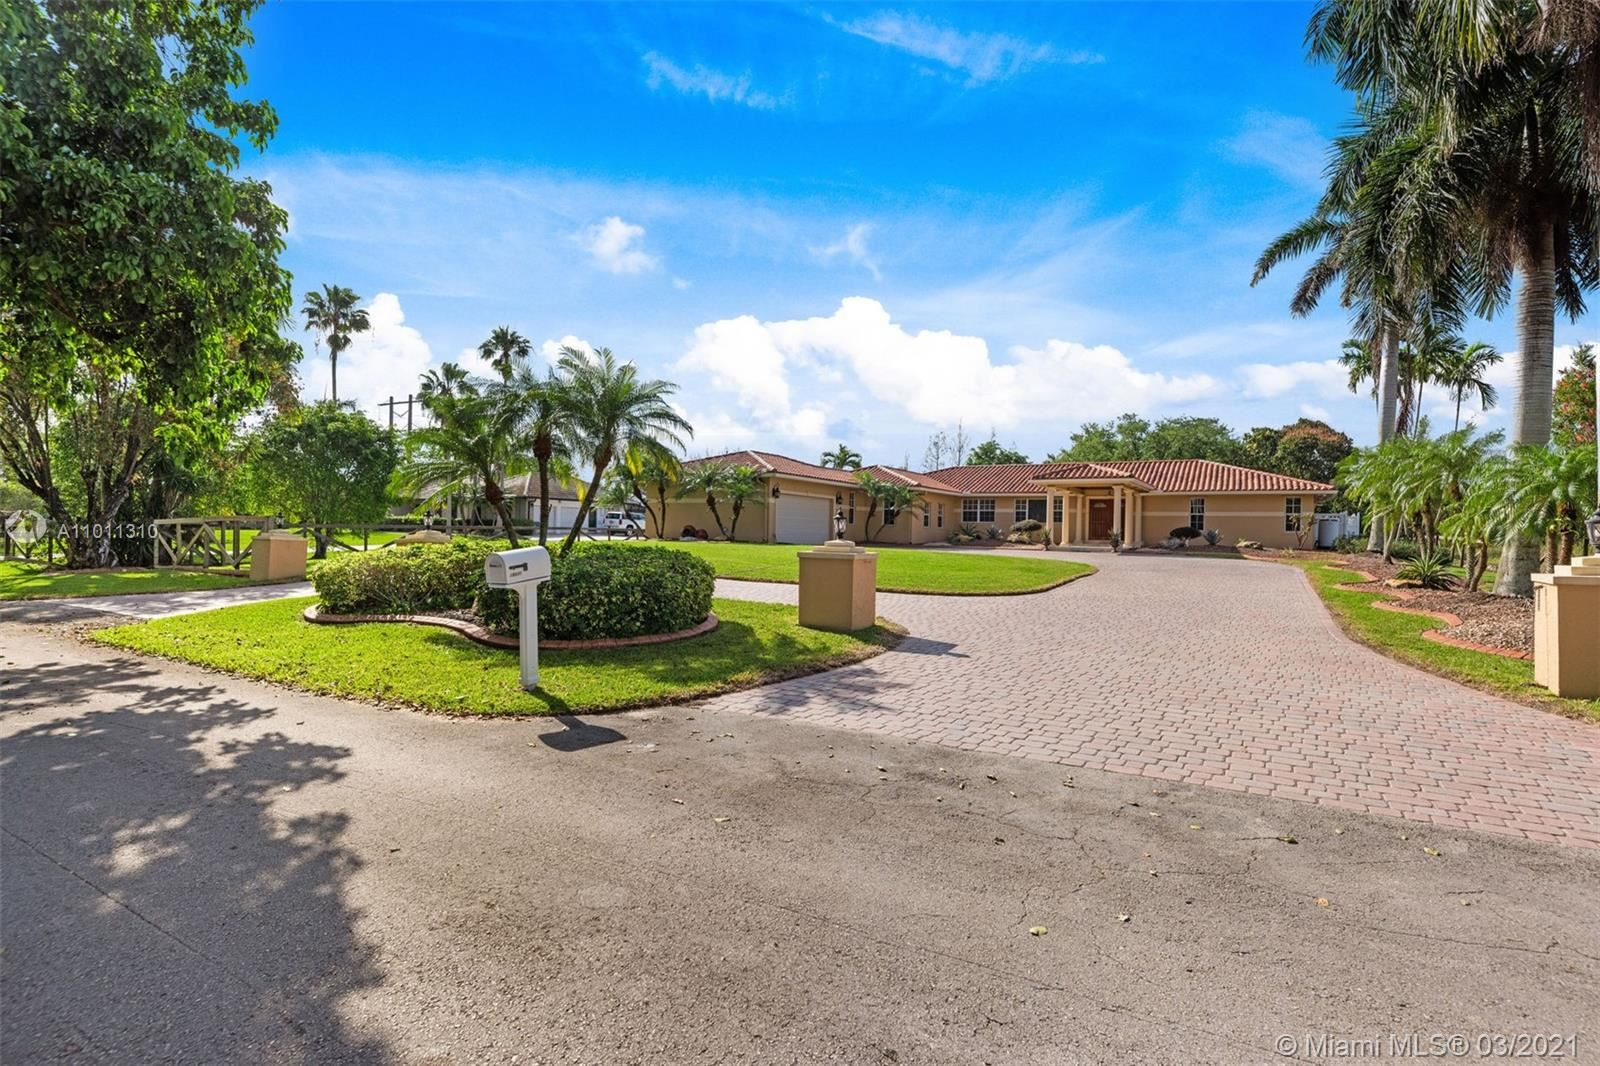 15830 SW 53rd CT, SouthWest Ranches, FL 33331 - #: A11011310